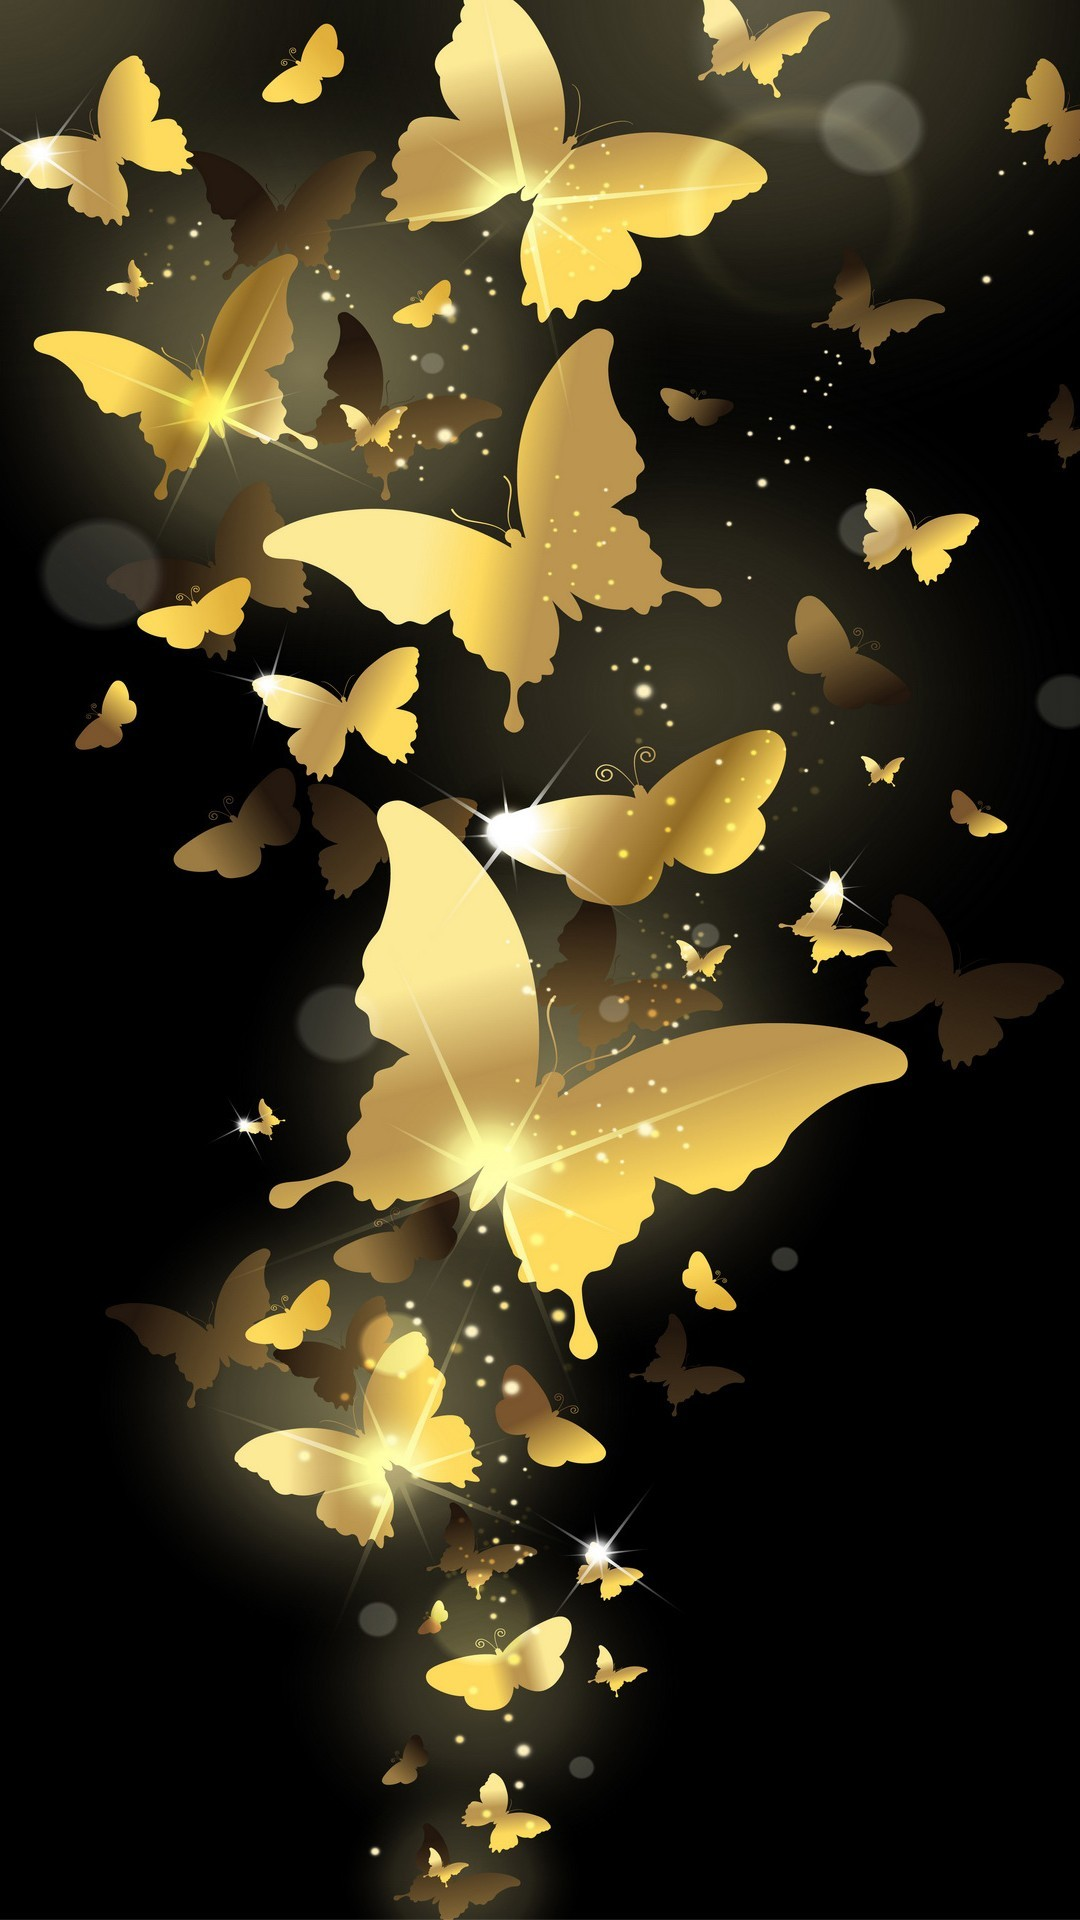 1080x1920 Flying Golden Butterflies Lockscreen iPhone 6 Plus HD Wallpaper | iPhone  Wallpaper